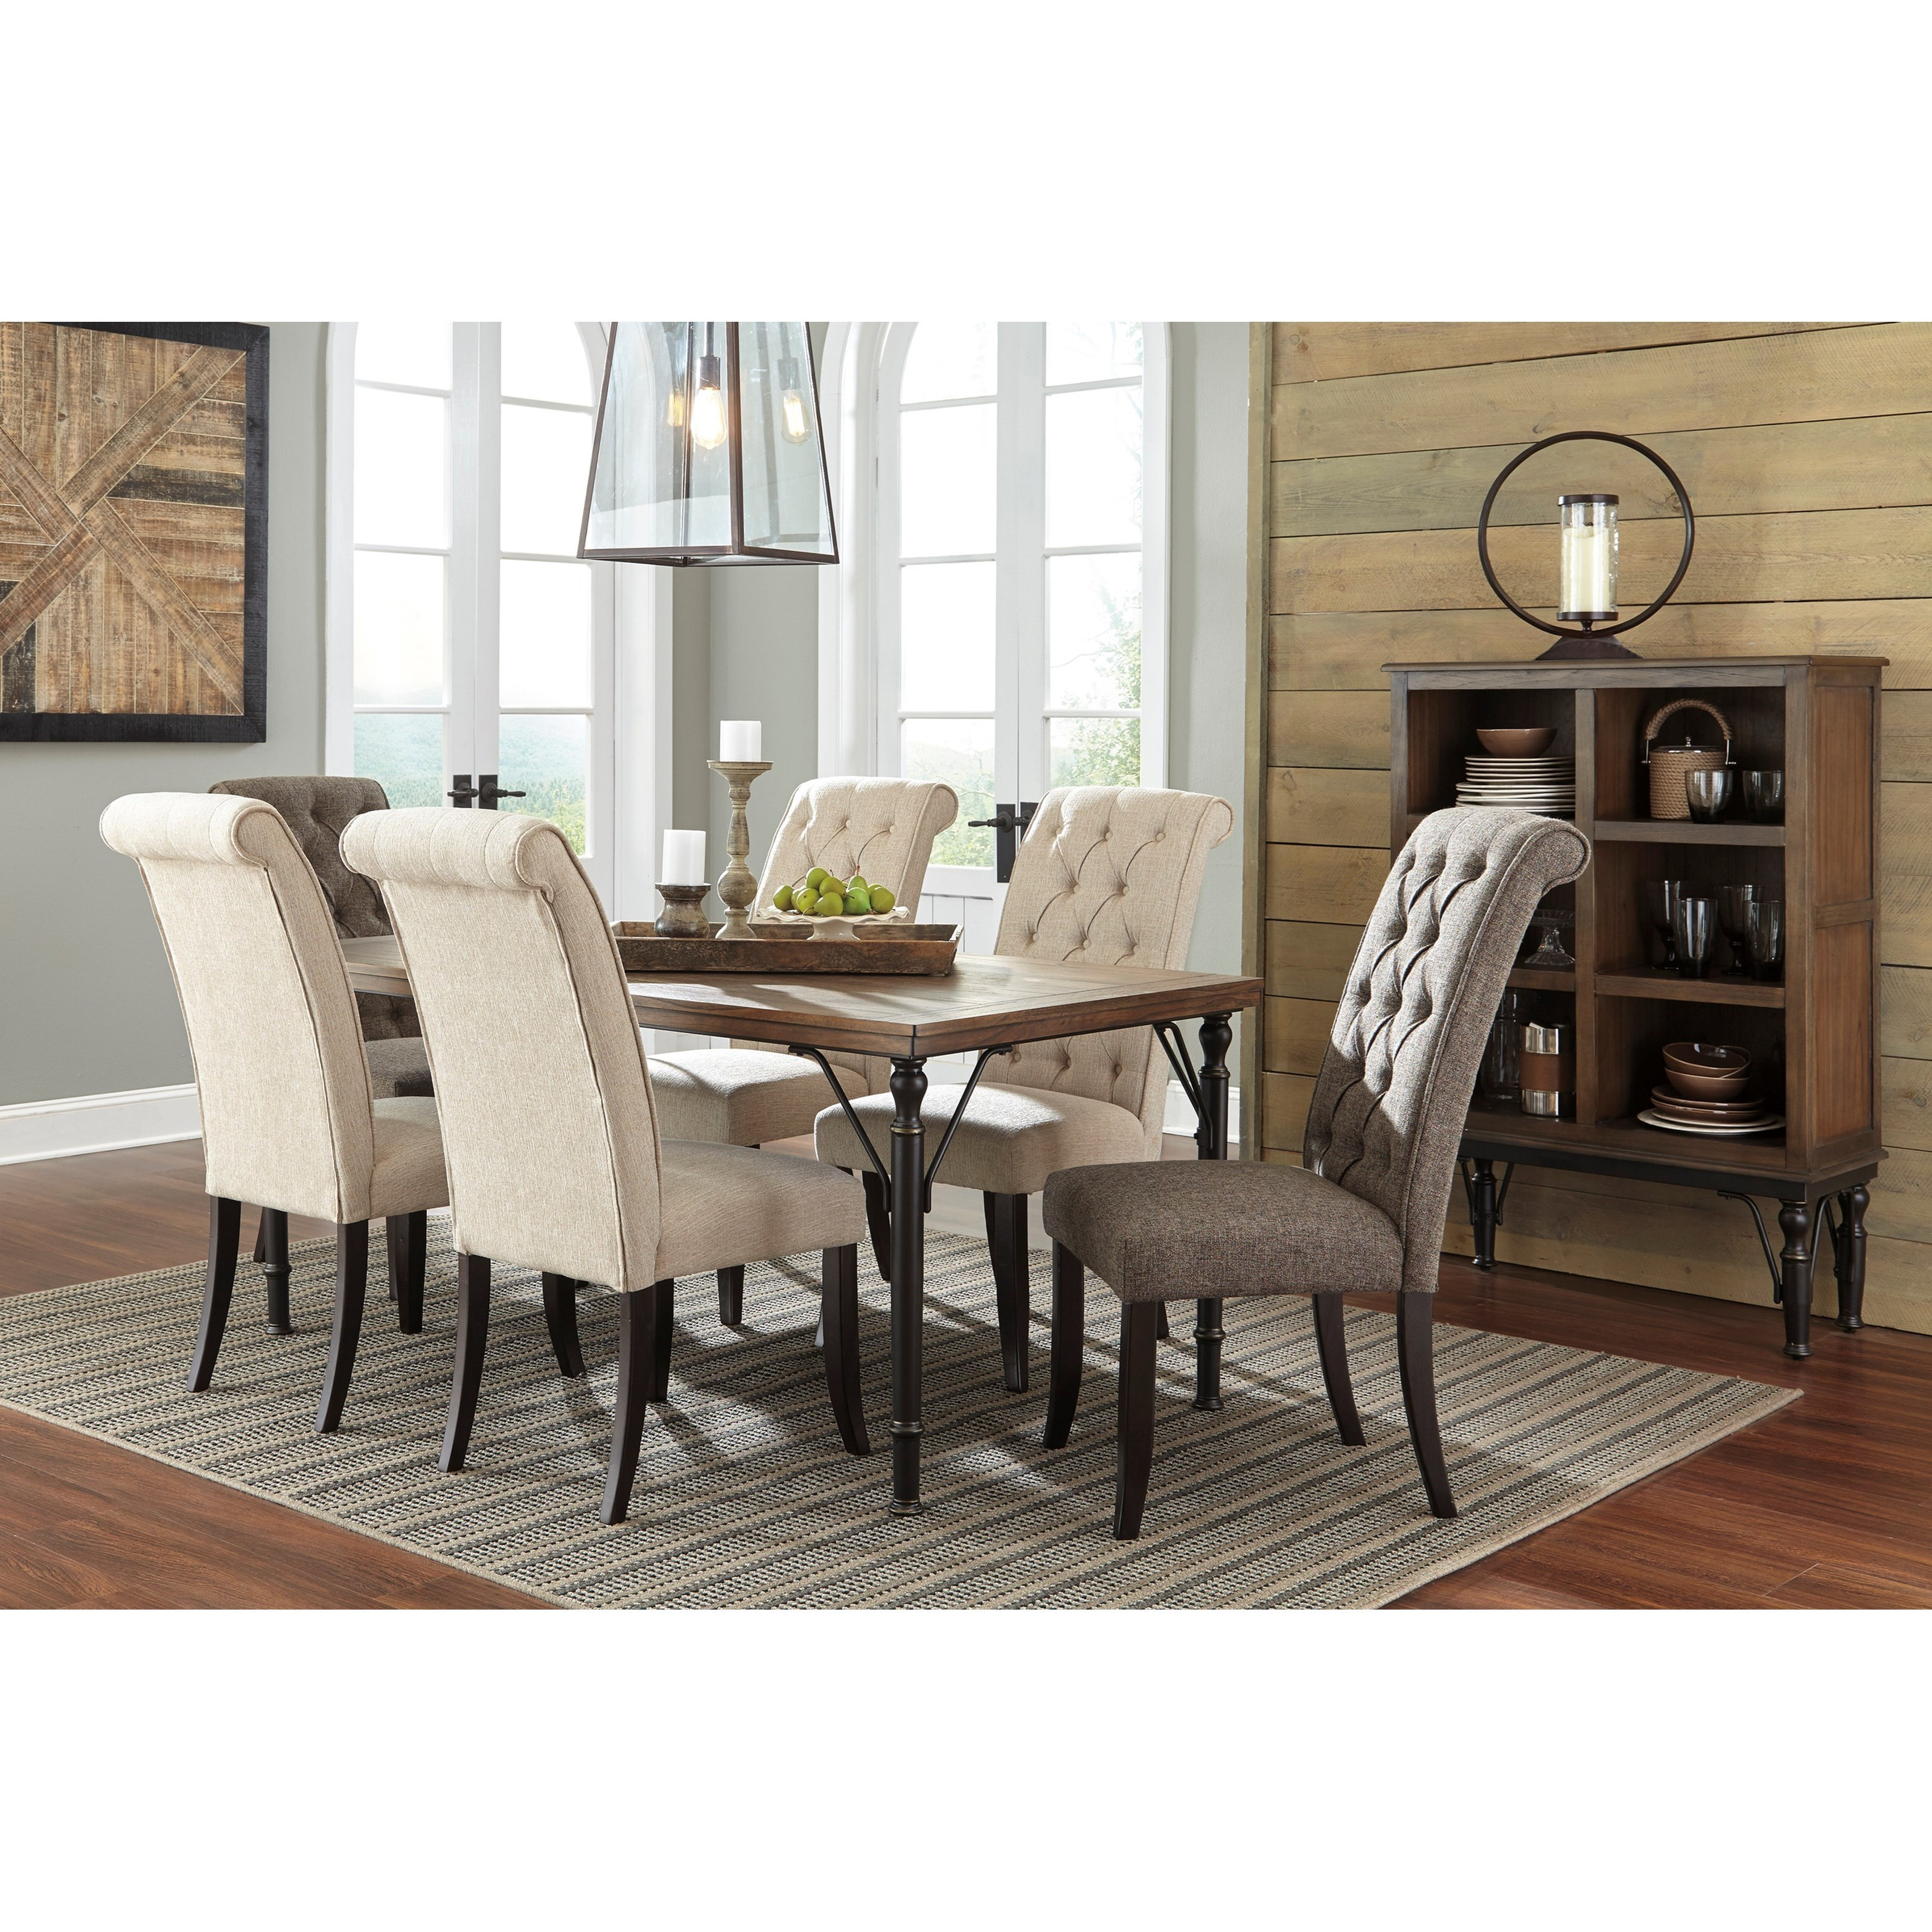 Signature Design by Ashley Tripton Casual Dining Room  : tripton20d530d53020dining20room20group204 b1jpgscalebothampwidth500ampheight500ampfsharpen25ampdown from www.nassaufurnitureonline.com size 500 x 500 jpeg 54kB